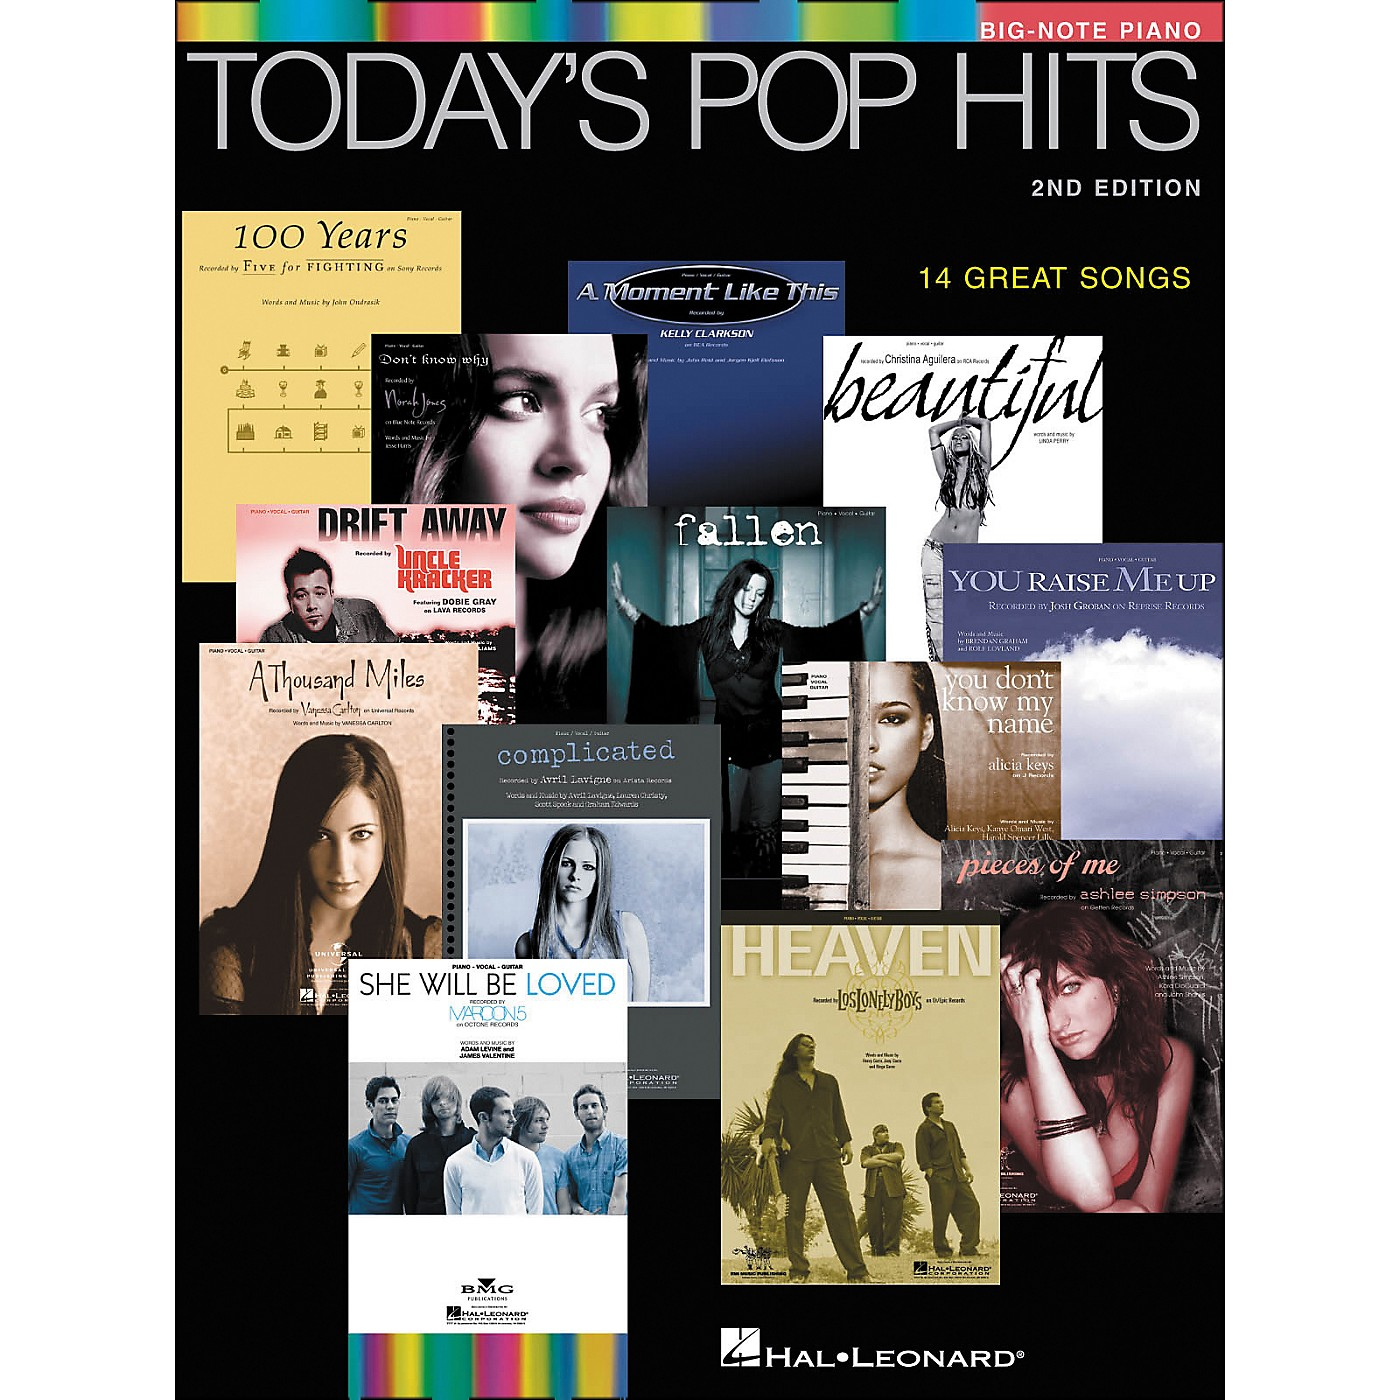 Hal Leonard Today's Pop Hits Second Edition for Big Note Piano thumbnail